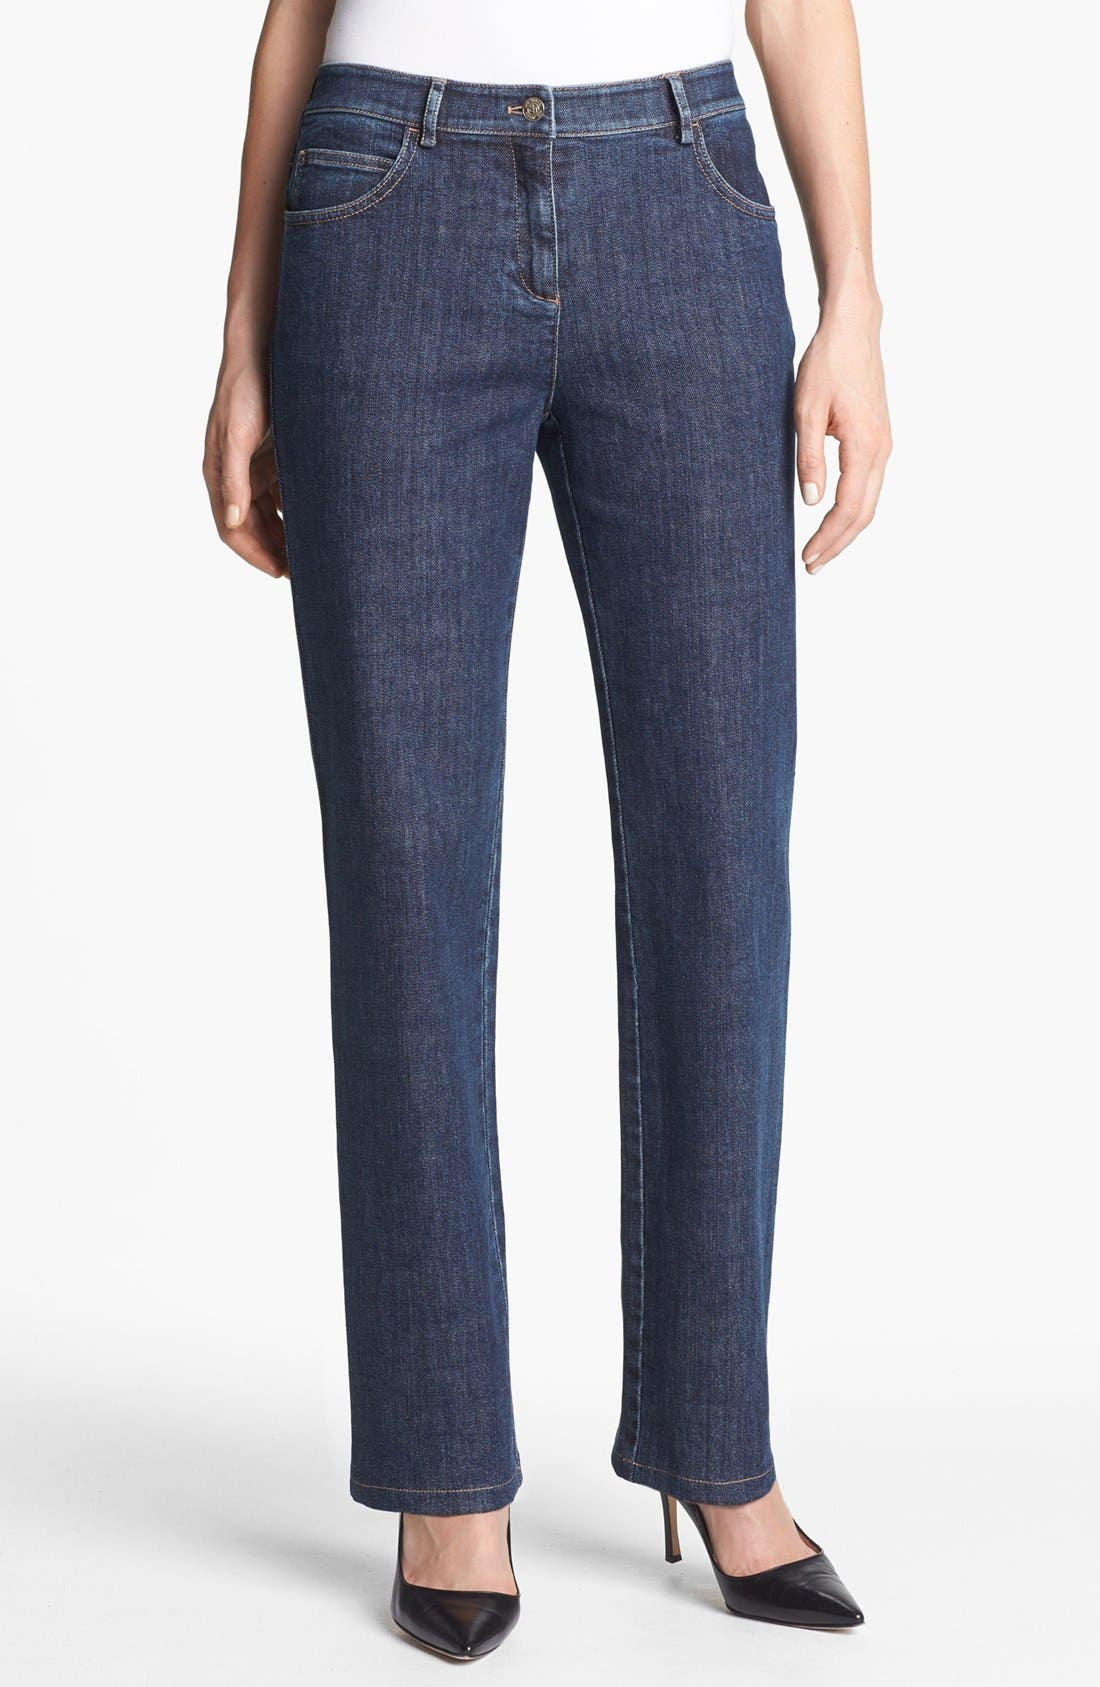 Main Image - St. John Yellow Label 'Marie' Straight Leg Stretch Jeans